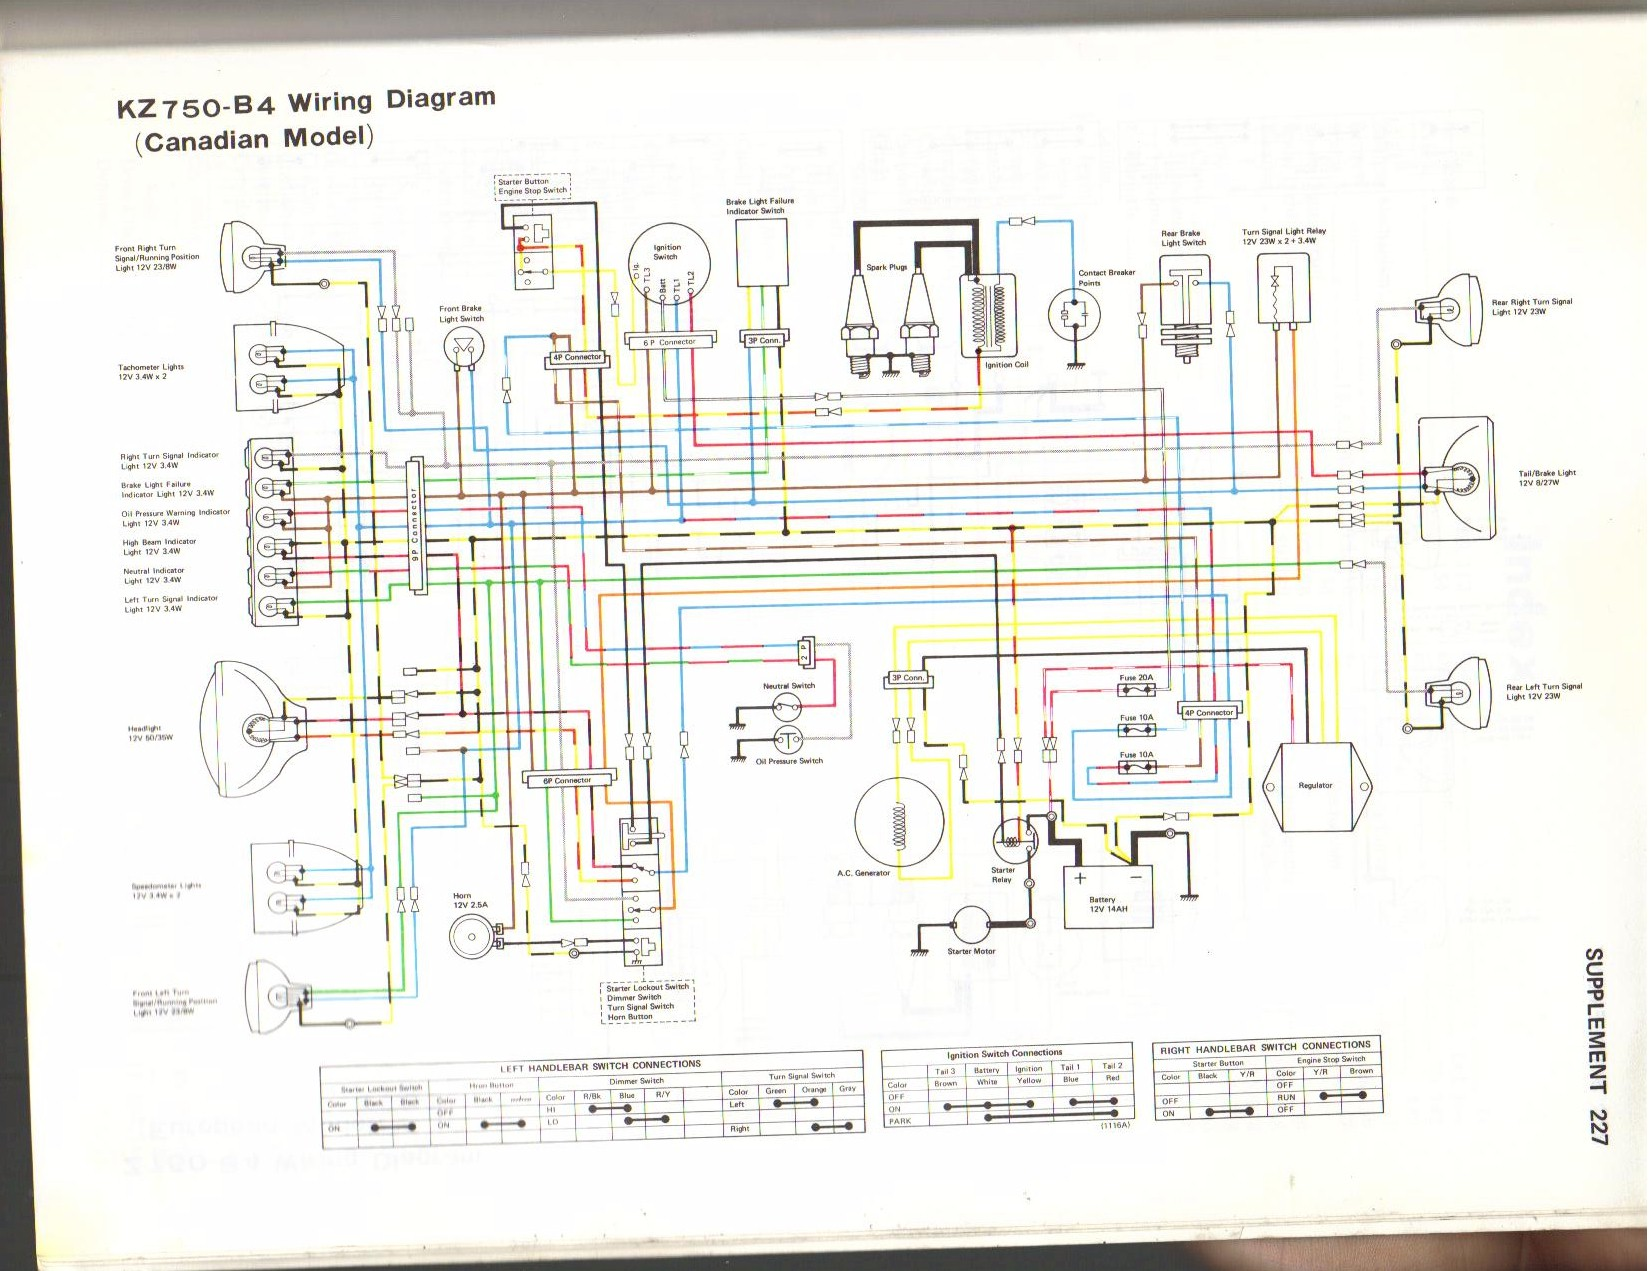 Kawasaki 750 Ltd Wiring Diagram Not Lossing 100 Get Free Image About Kz750 Simple Schema Rh 24 Lodge Finder De 1982